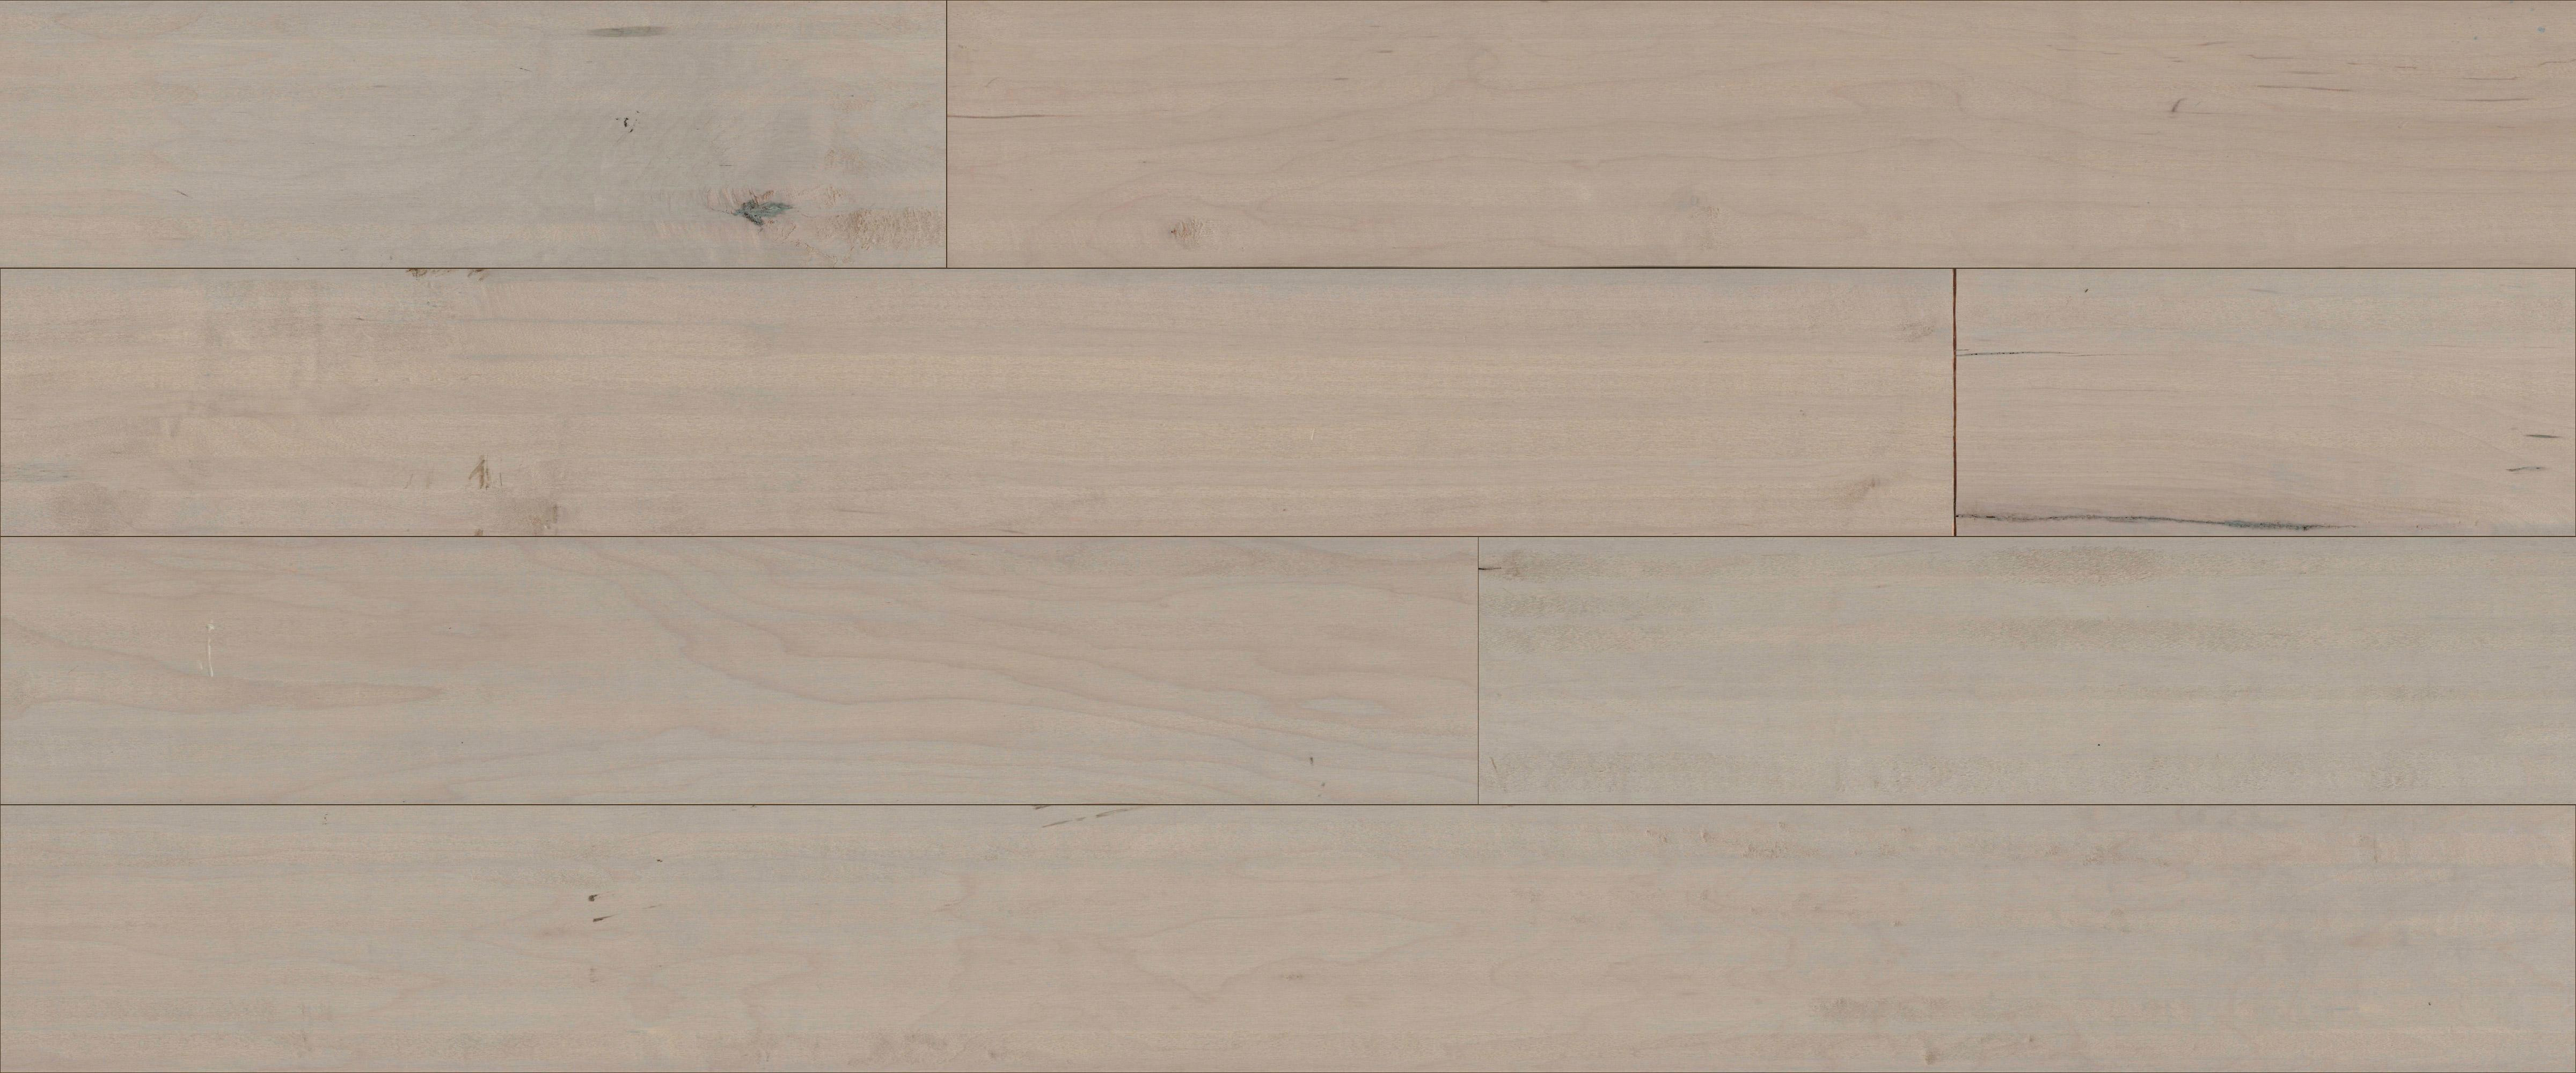 5 inch maple hardwood flooring of mullican lincolnshire sculpted maple frost 5 engineered hardwood in mullican lincolnshire sculpted maple frost 5 engineered hardwood flooring